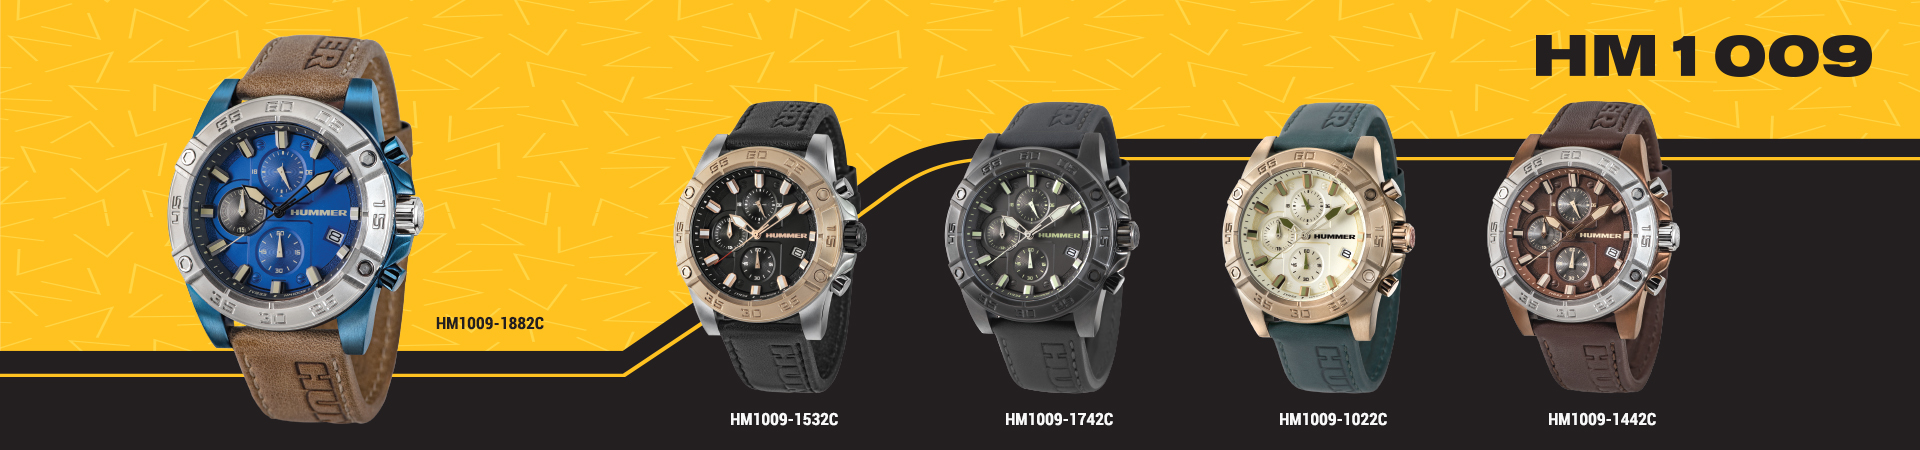 Hummer Watch Collection HM1009